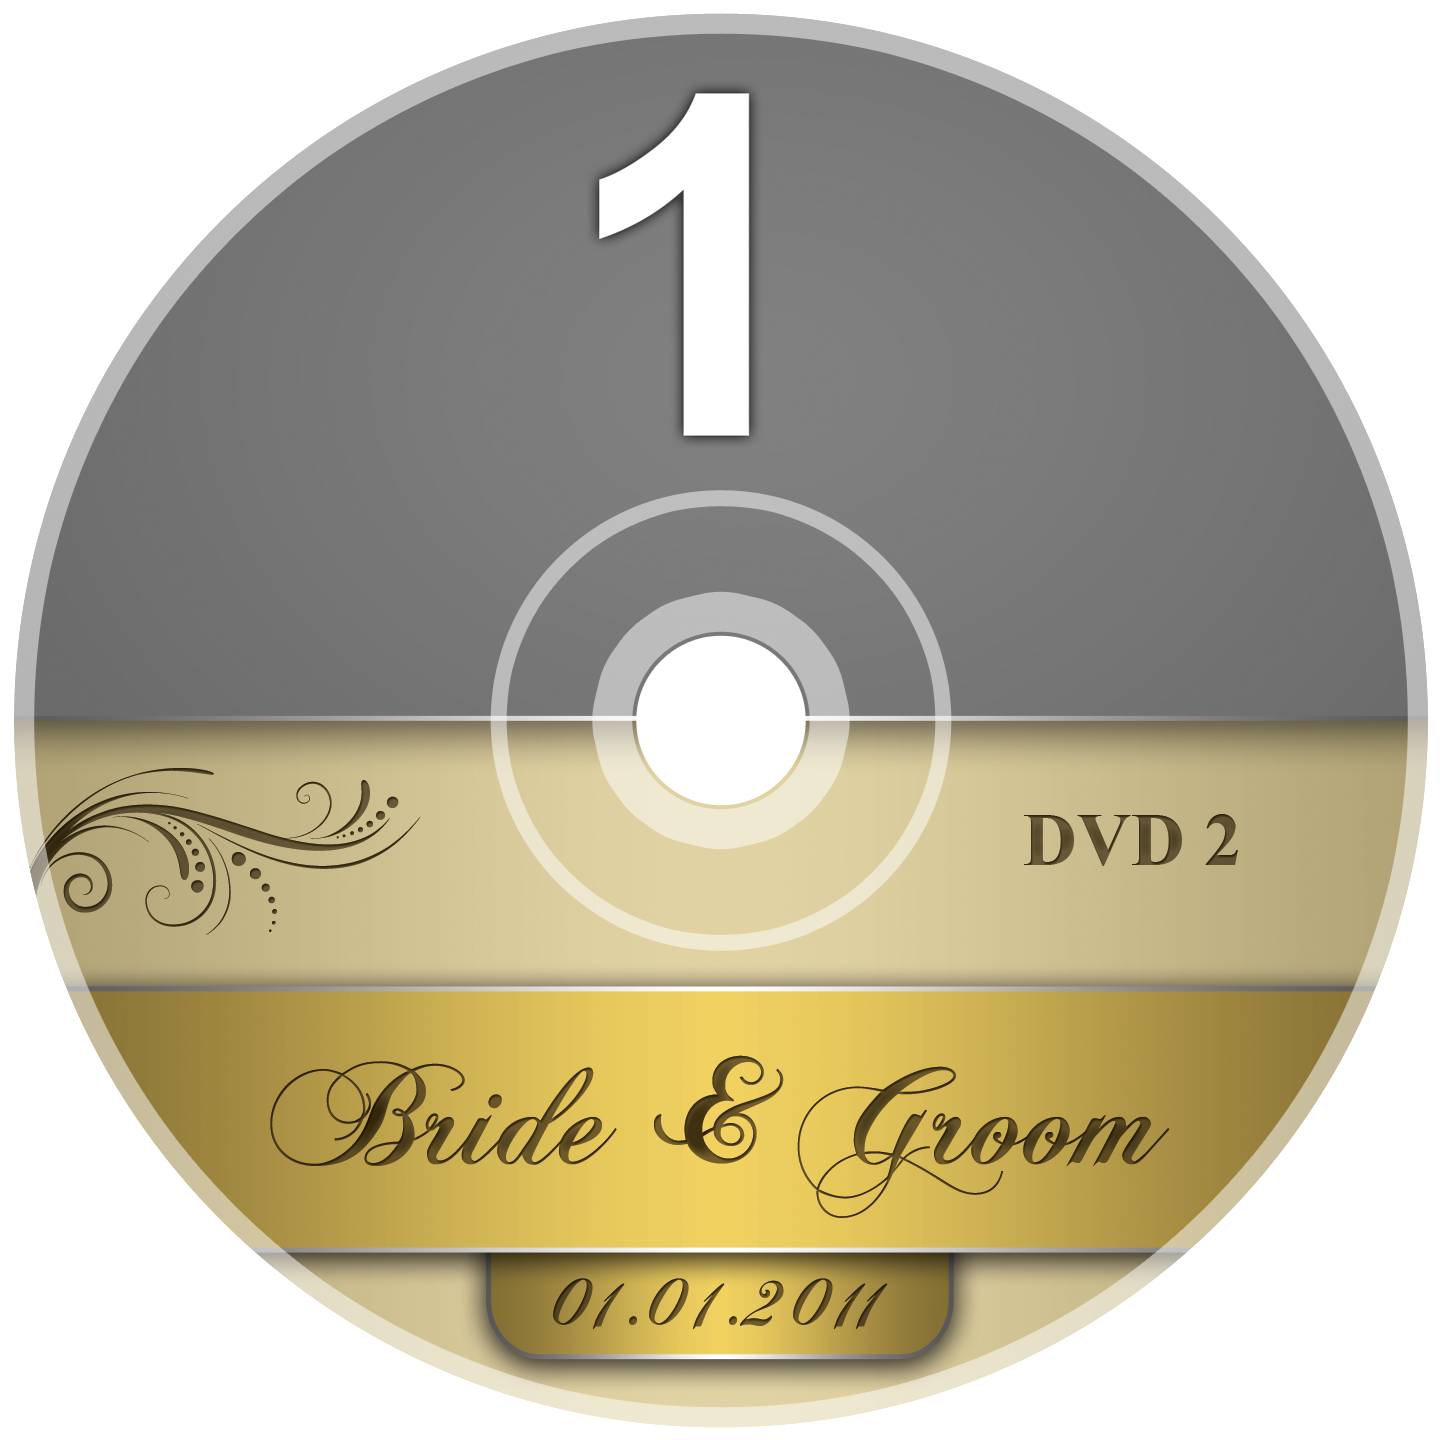 dvd label template psd